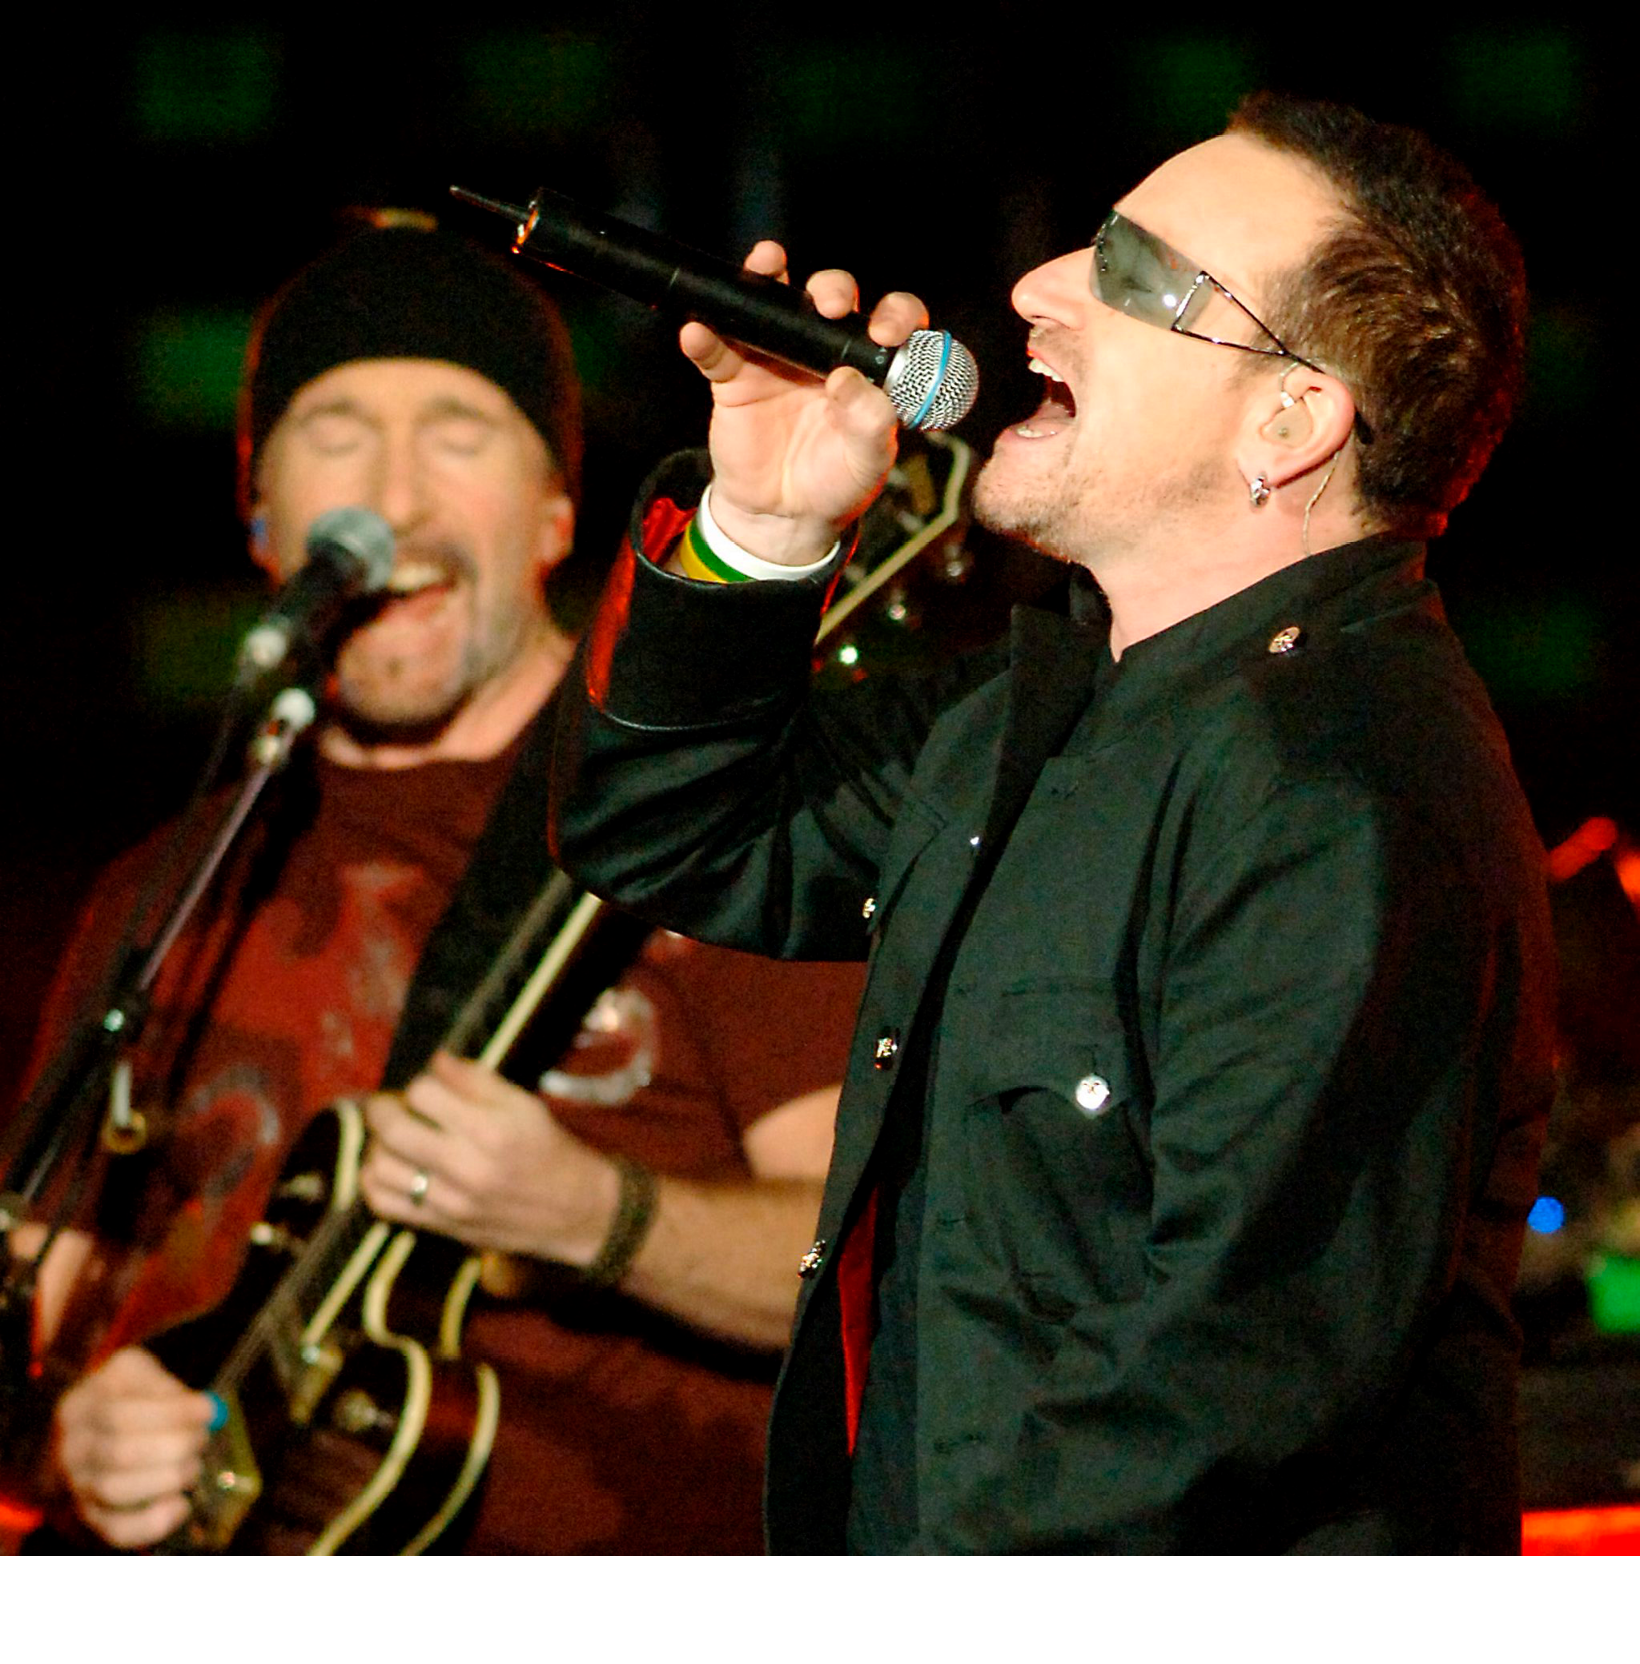 epa00857792 U2 frontman Bono sings to a capacity crowd at the QE II Stadium in Brisbane, Tuesday, 07 November 2006. The Irish group kicked off their Australian tour in Brisbane, resuming their Vertigo world tour after a 7 month break.  EPA/DAVE HUNT AUSTRALIA AND NEW ZEALAND OUT